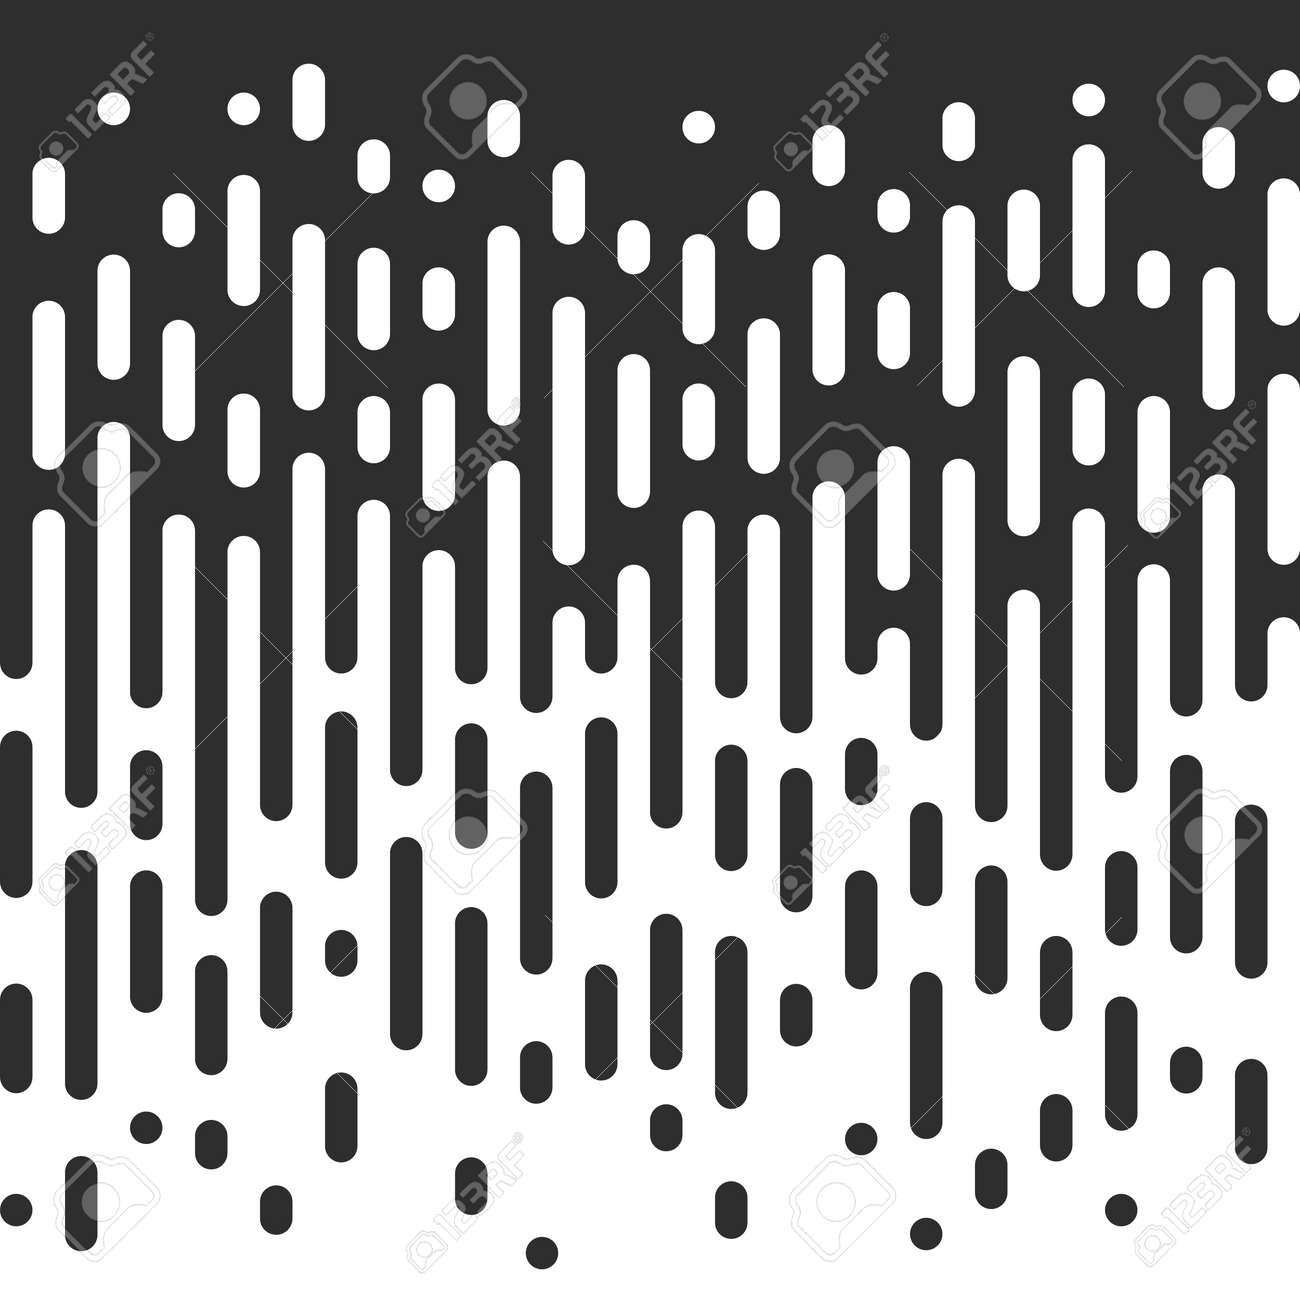 vector halftone transition abstract wallpaper pattern seamless black and white irregular rounded lines background